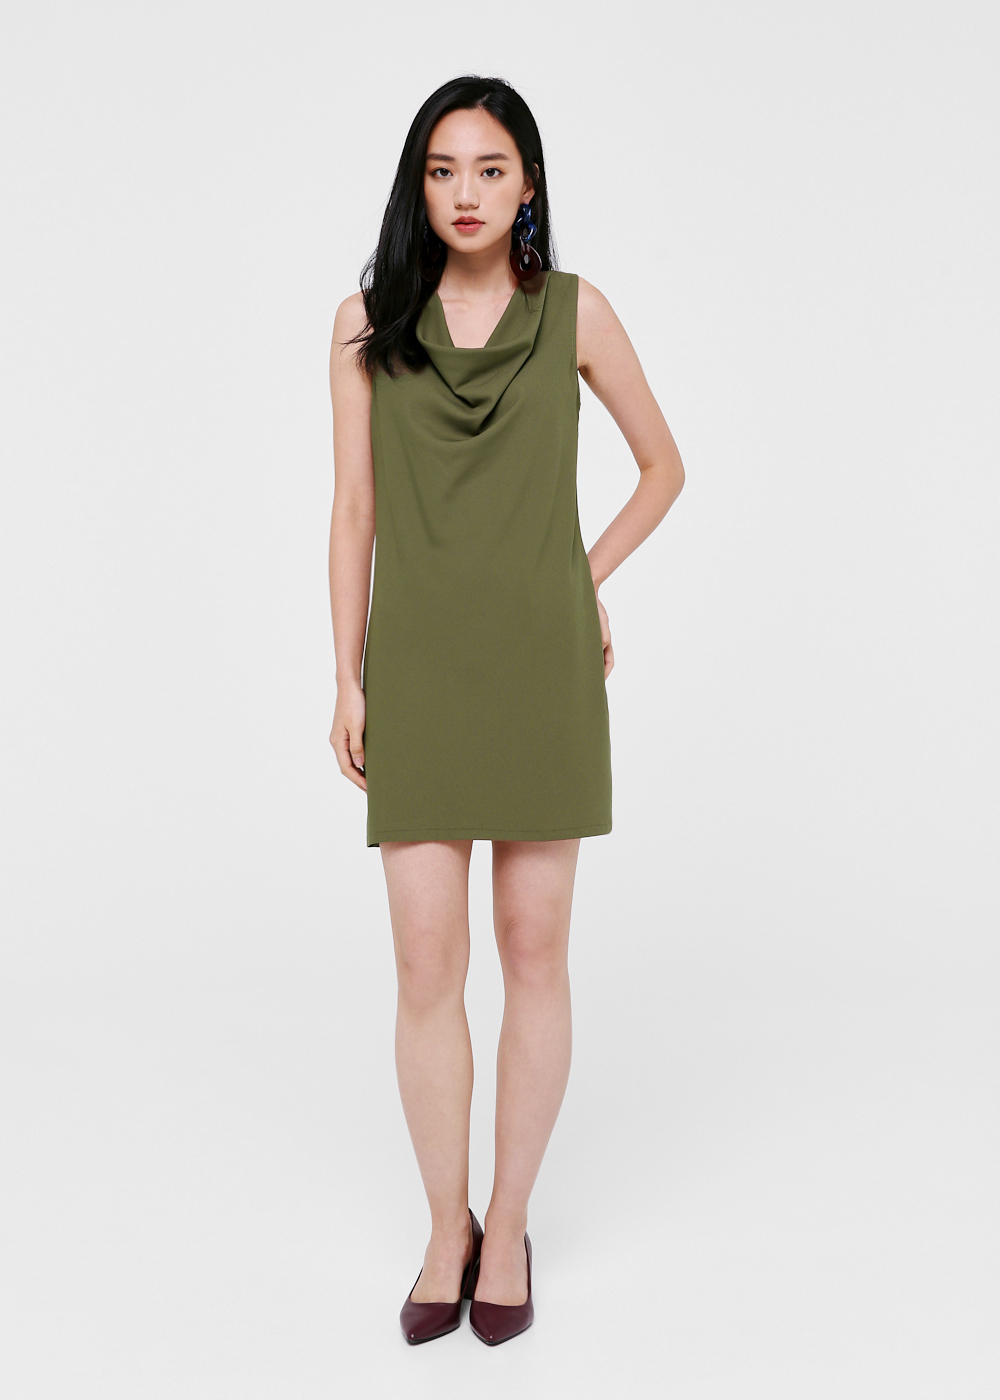 Carissa Cowl Neck Shift Dress-079-XS